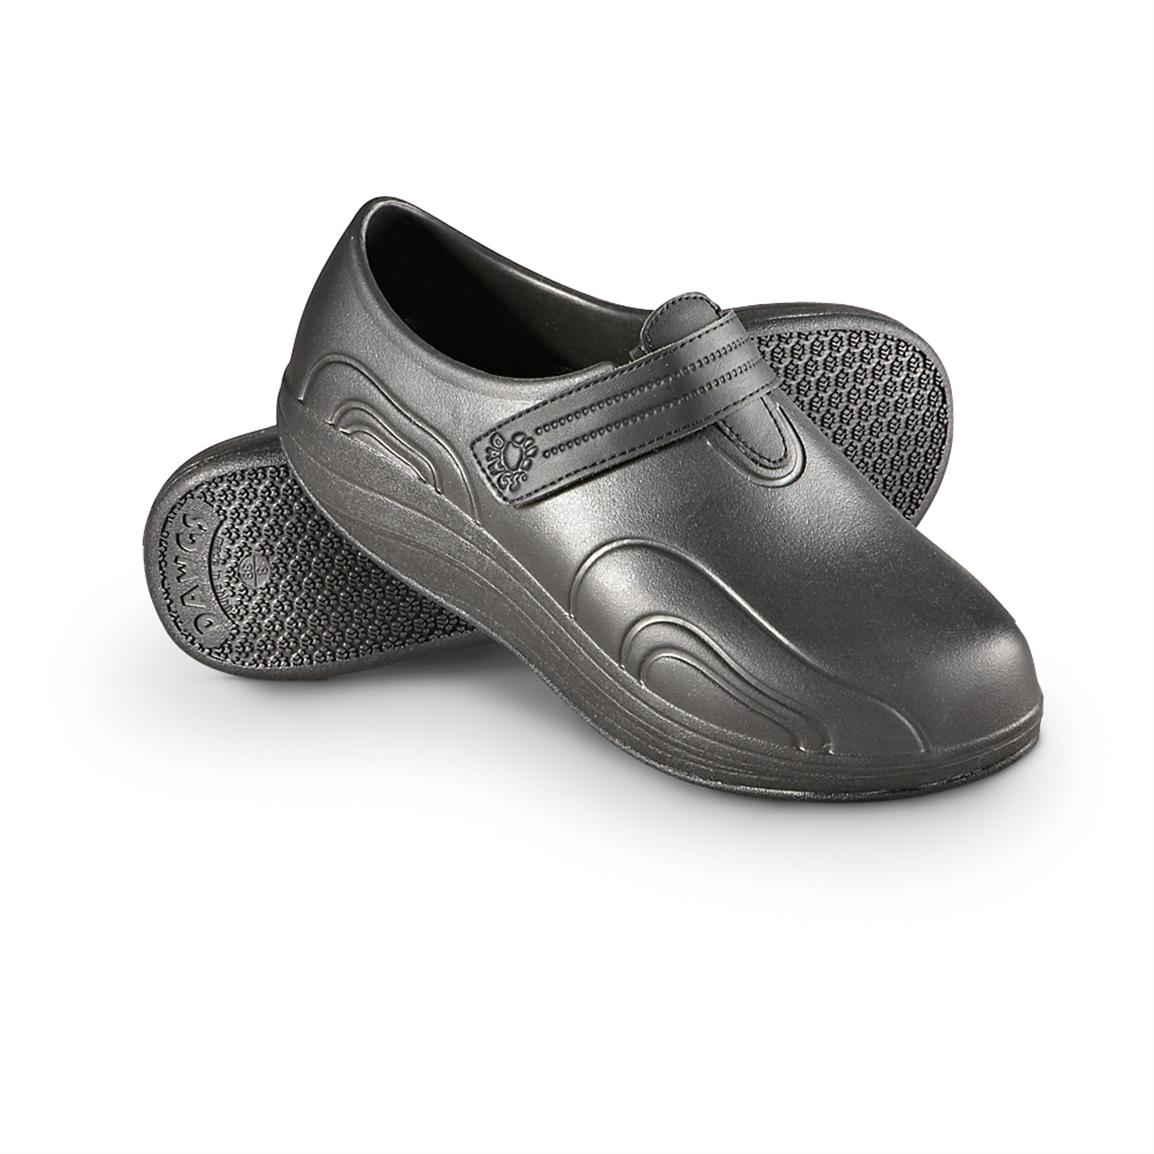 DAWGS™ UltraLite Toners - Rubber Work Shoes, Black